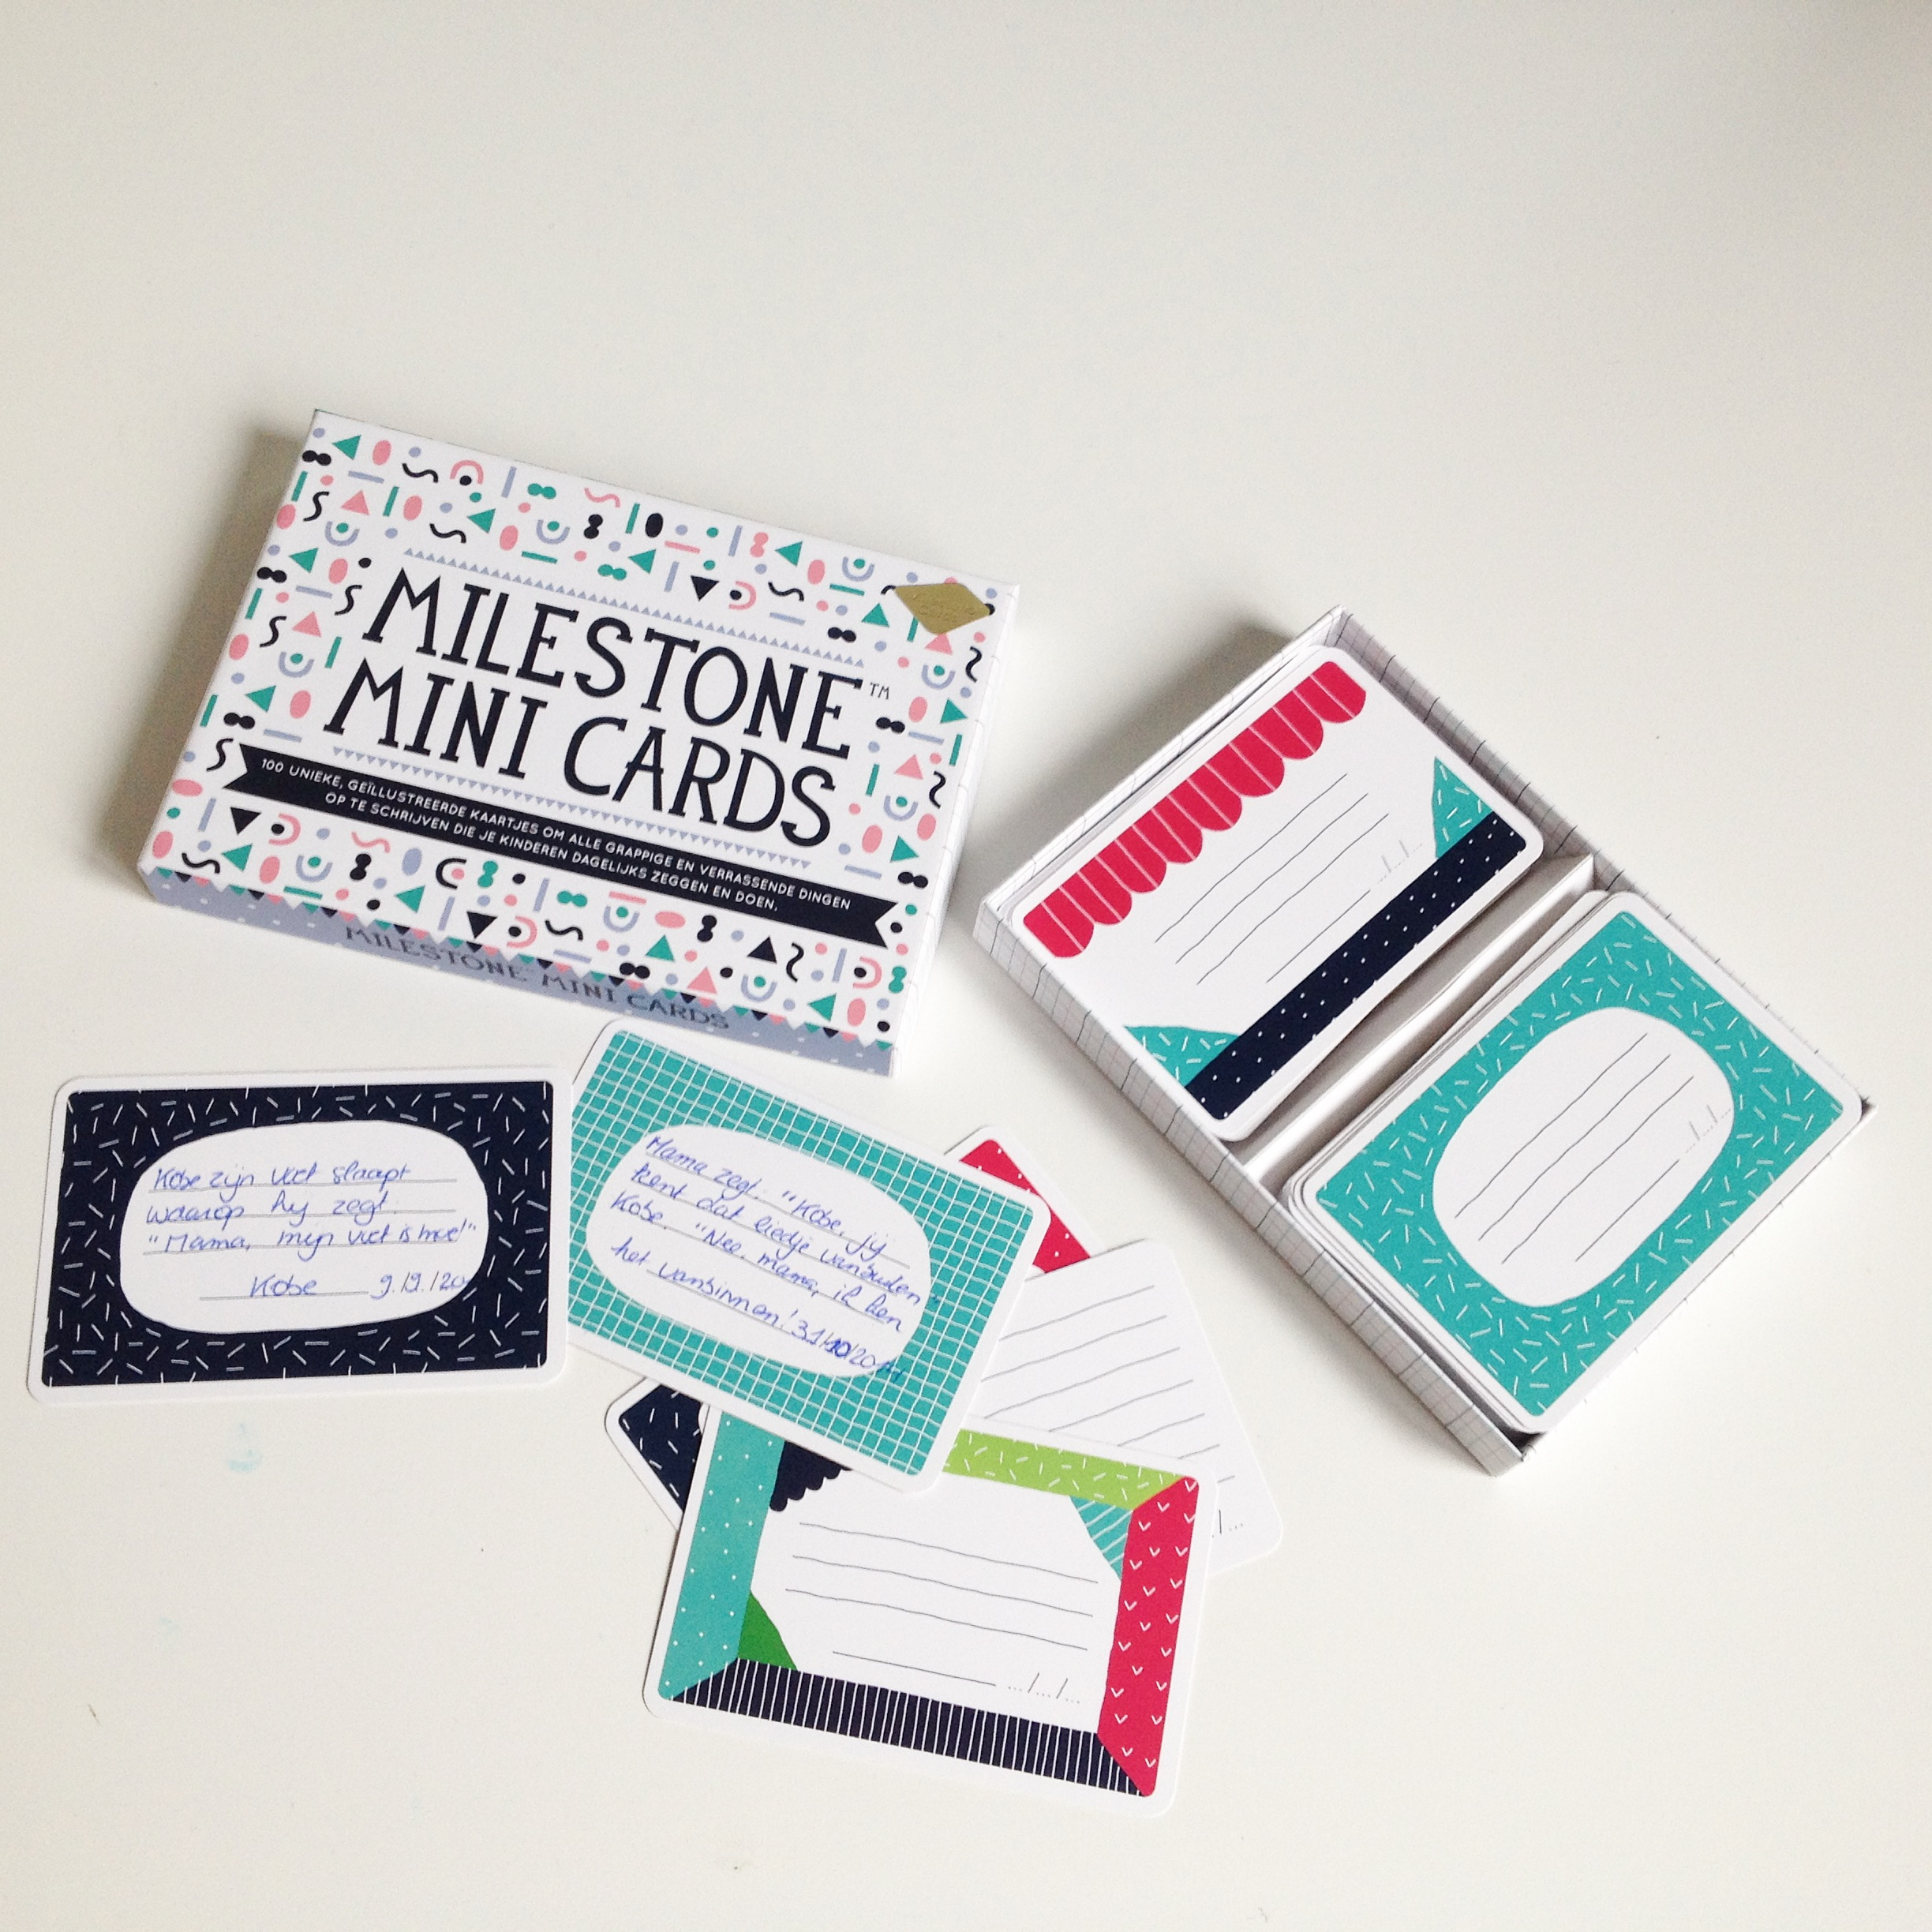 Milestone Mini Cards